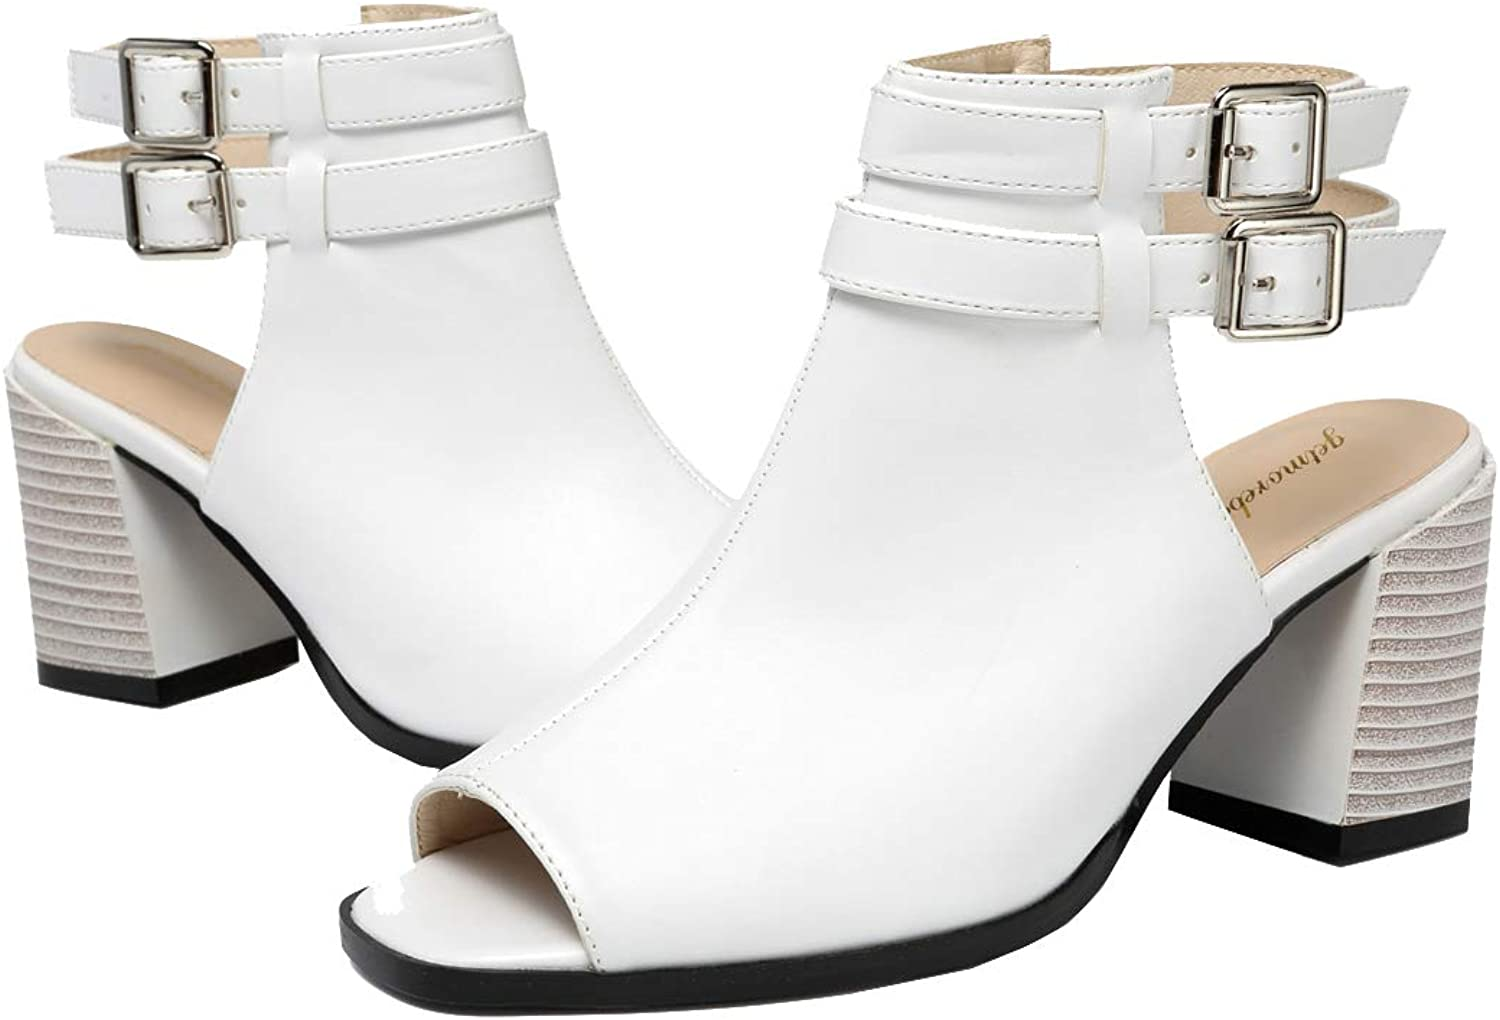 Getmorebeauty Women's Vintage Open Toes Cutout Chunky Stacked Heel Sandals Straps Ankle Bootie